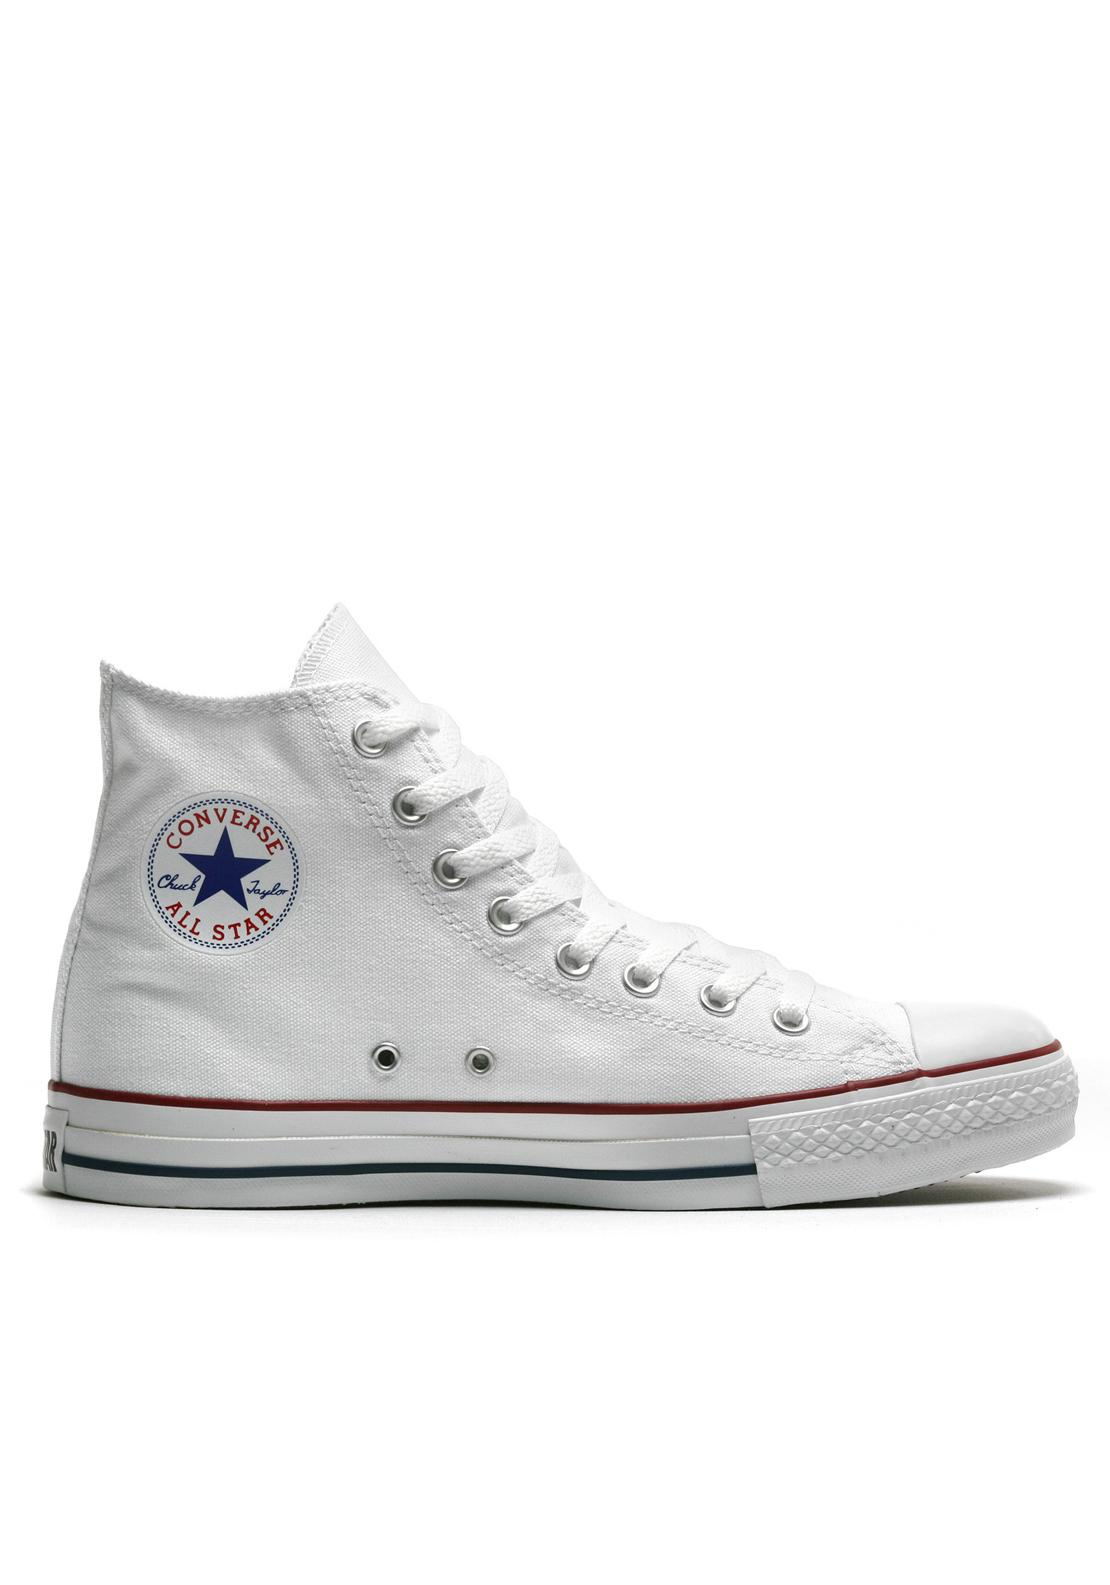 Converse Unisex Chuck Taylor  Hi Tops, White